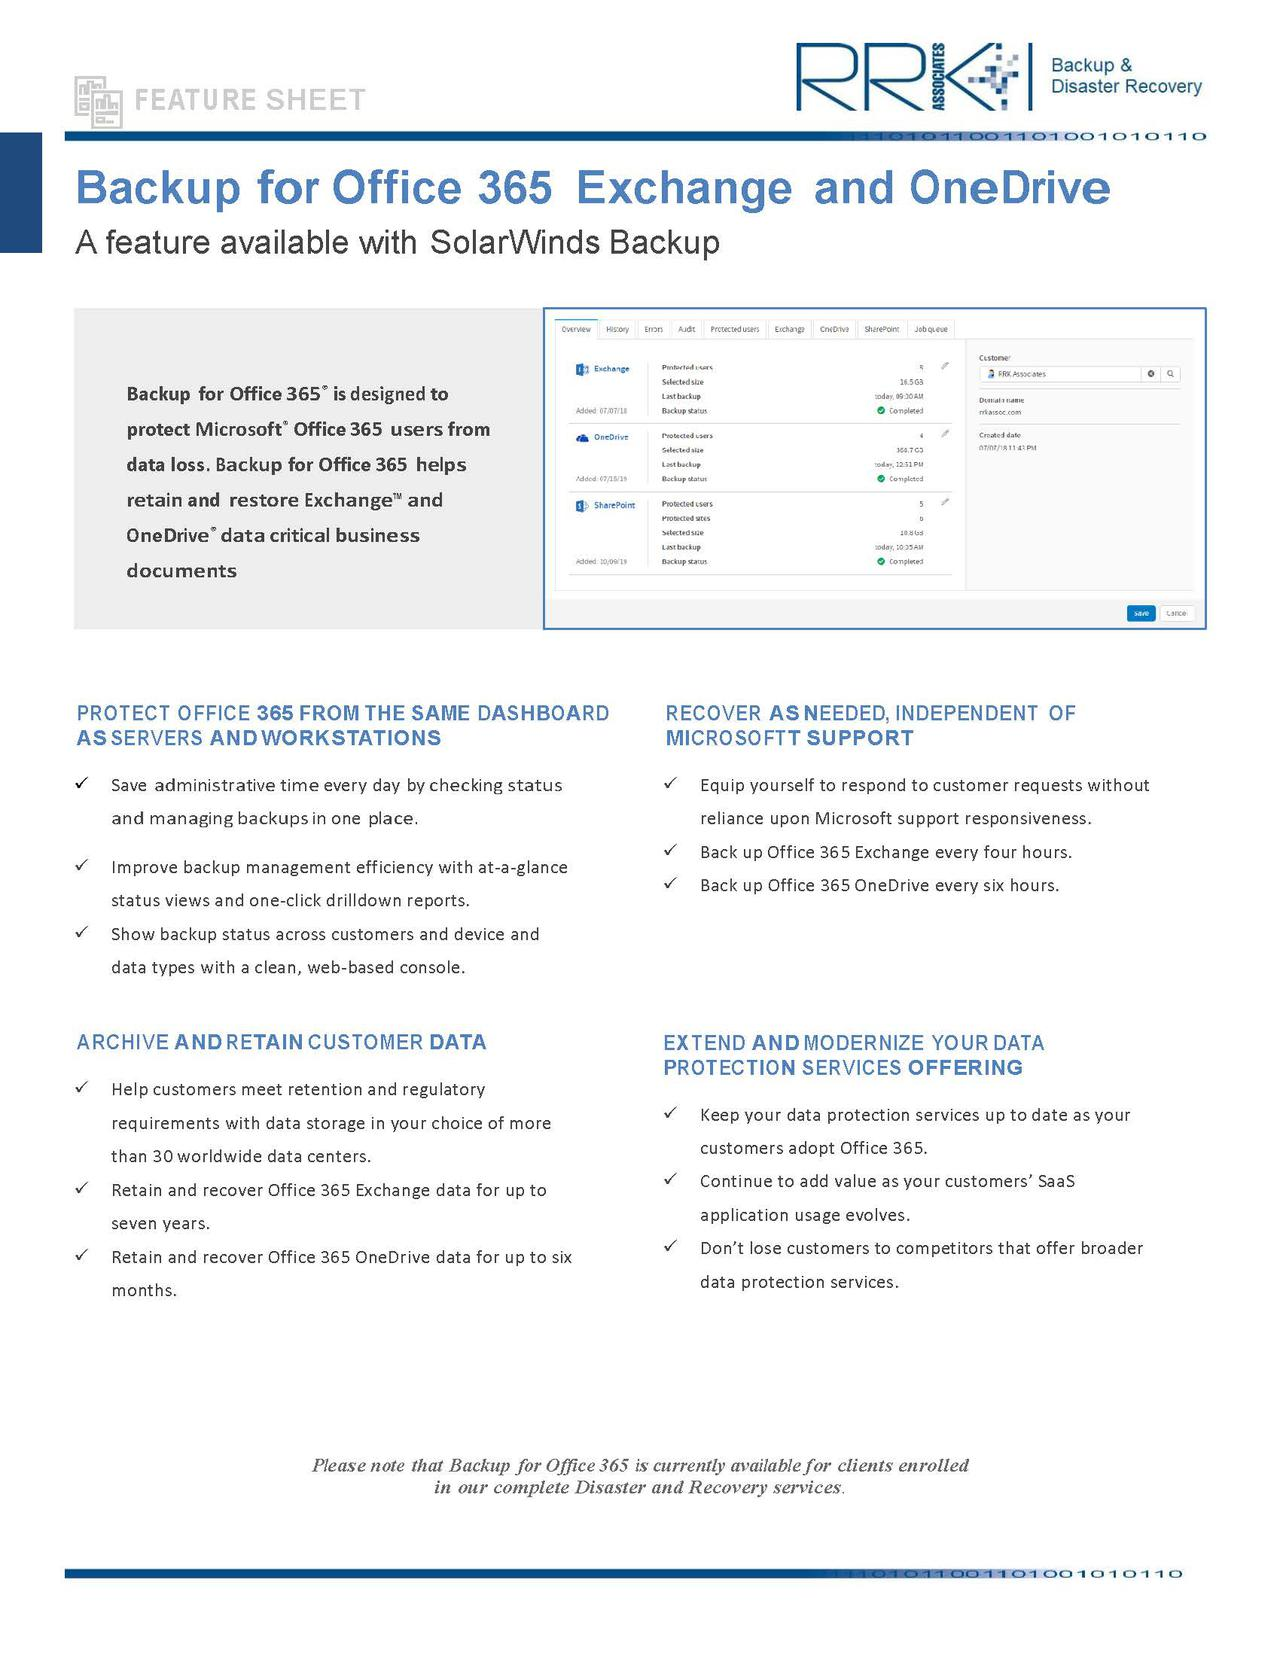 backup feature sheet for o365 no pricing.jpg